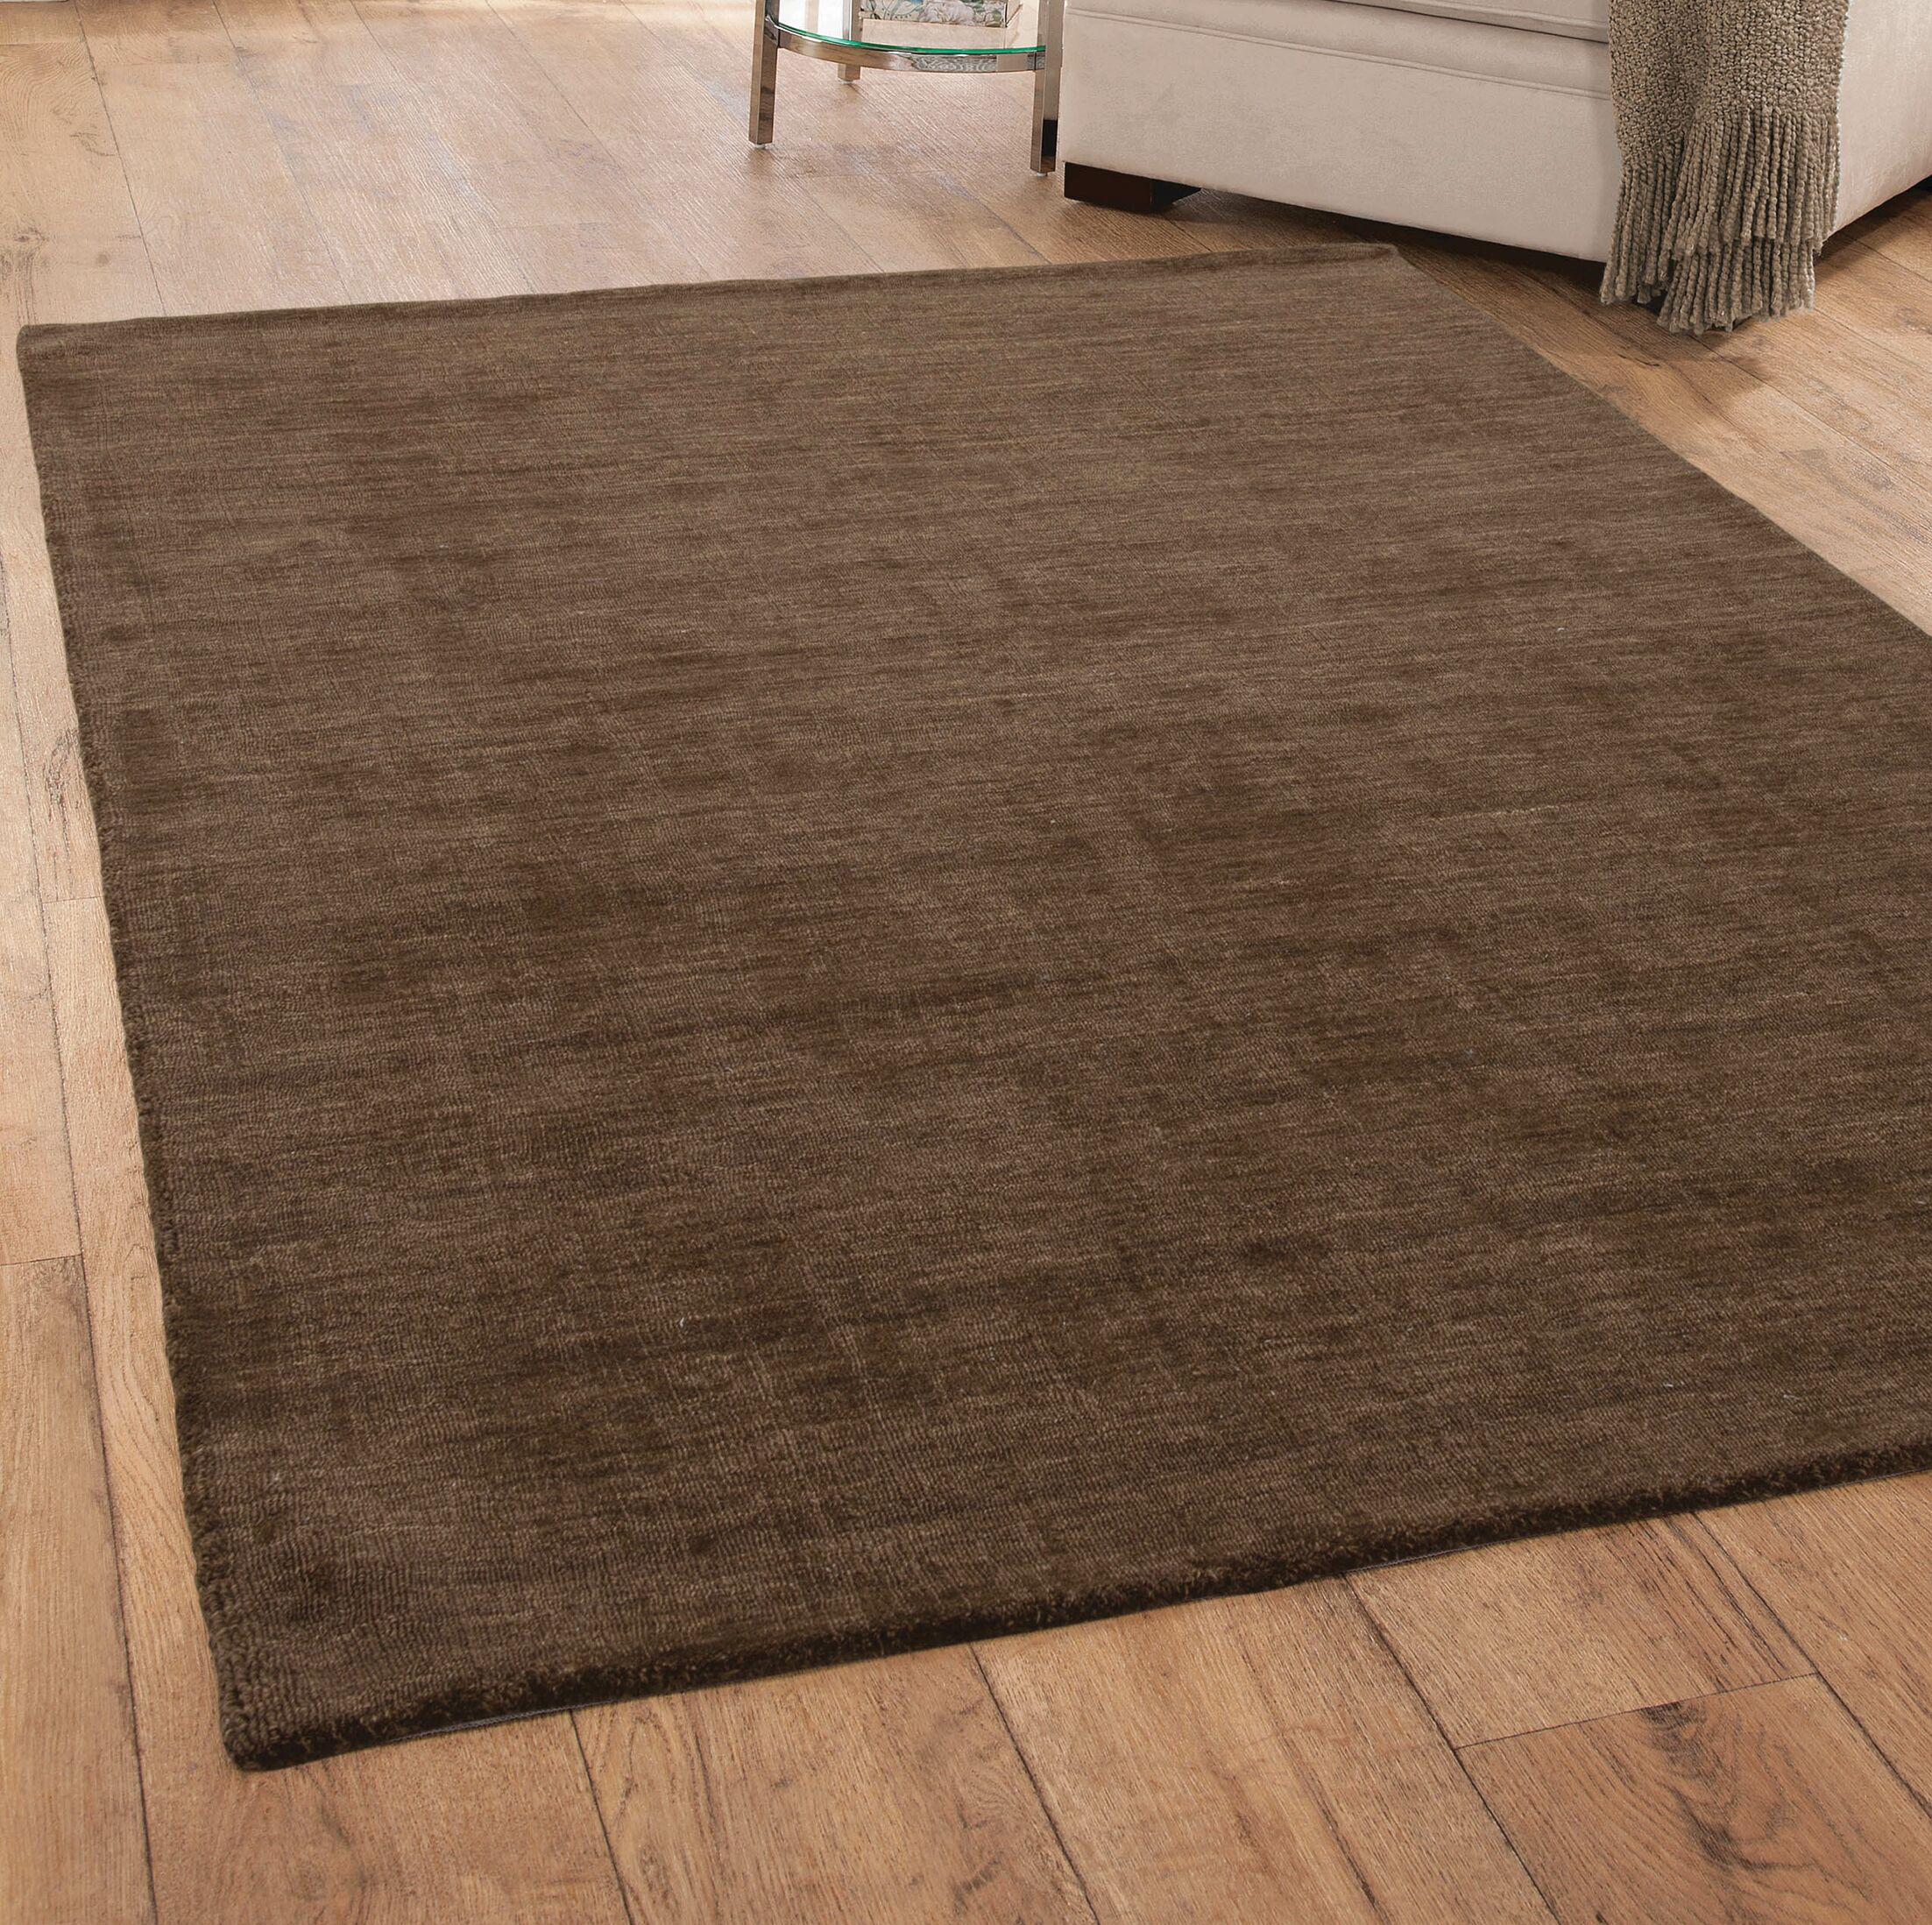 Loring Hand-Tufted Brown Area Rug Rug Size: 8' x 10'